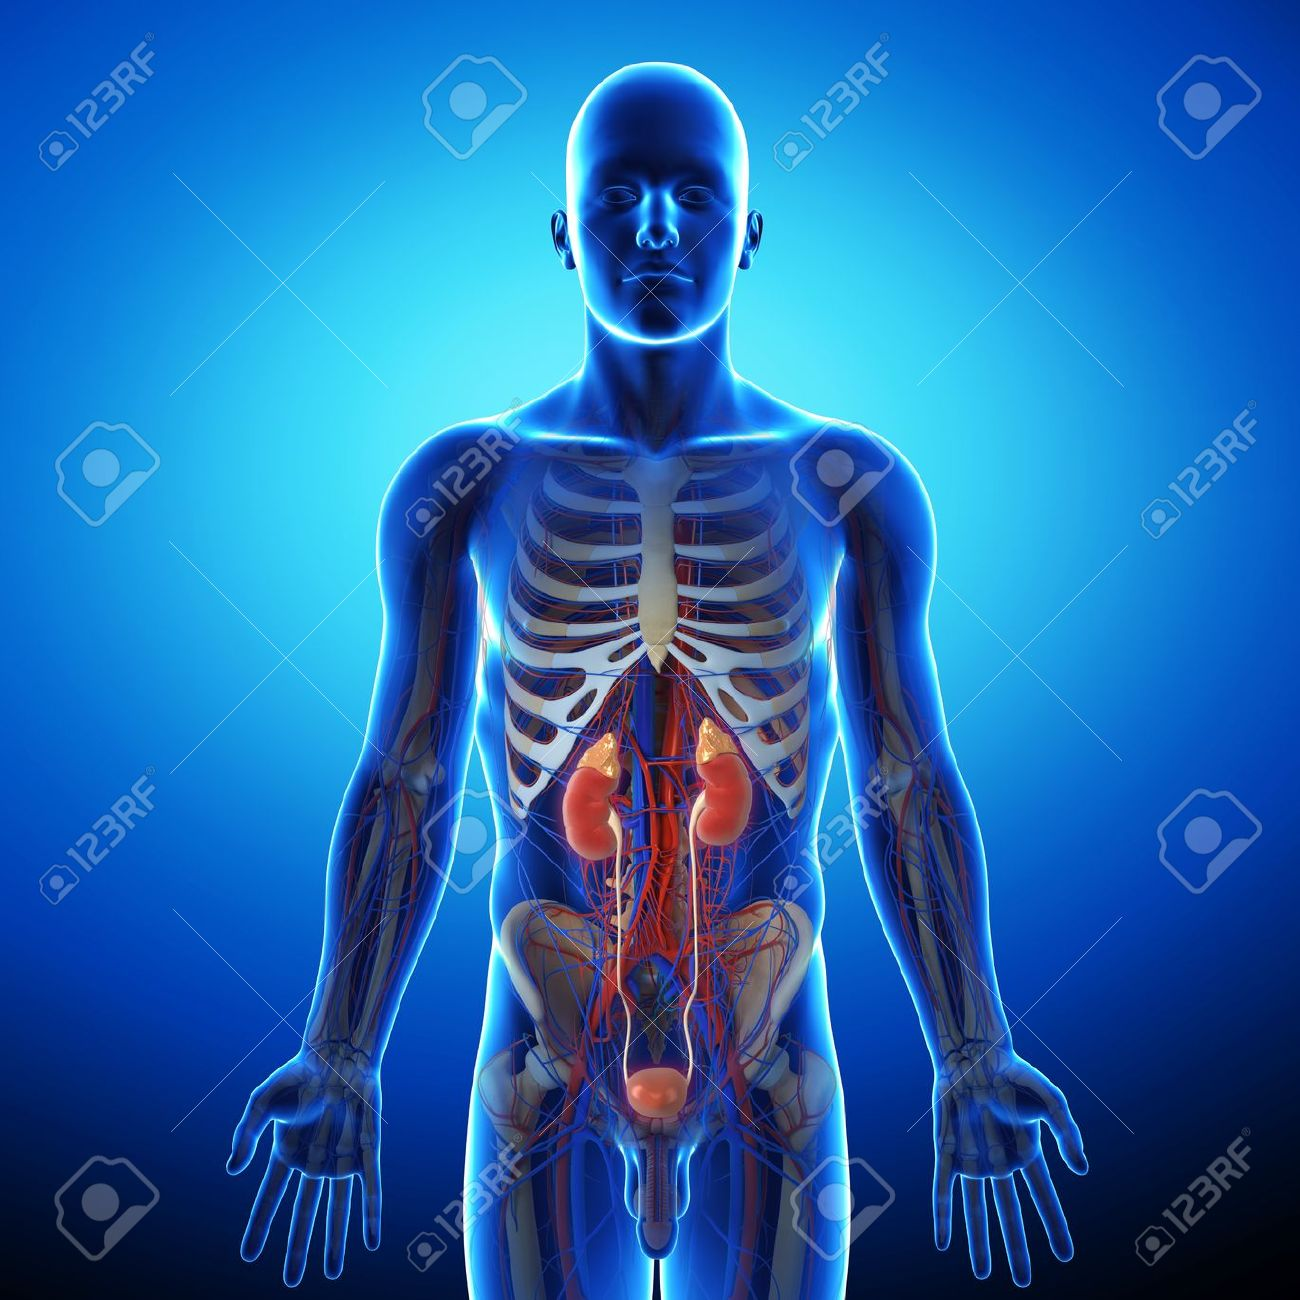 human urinary system in blue x-ray